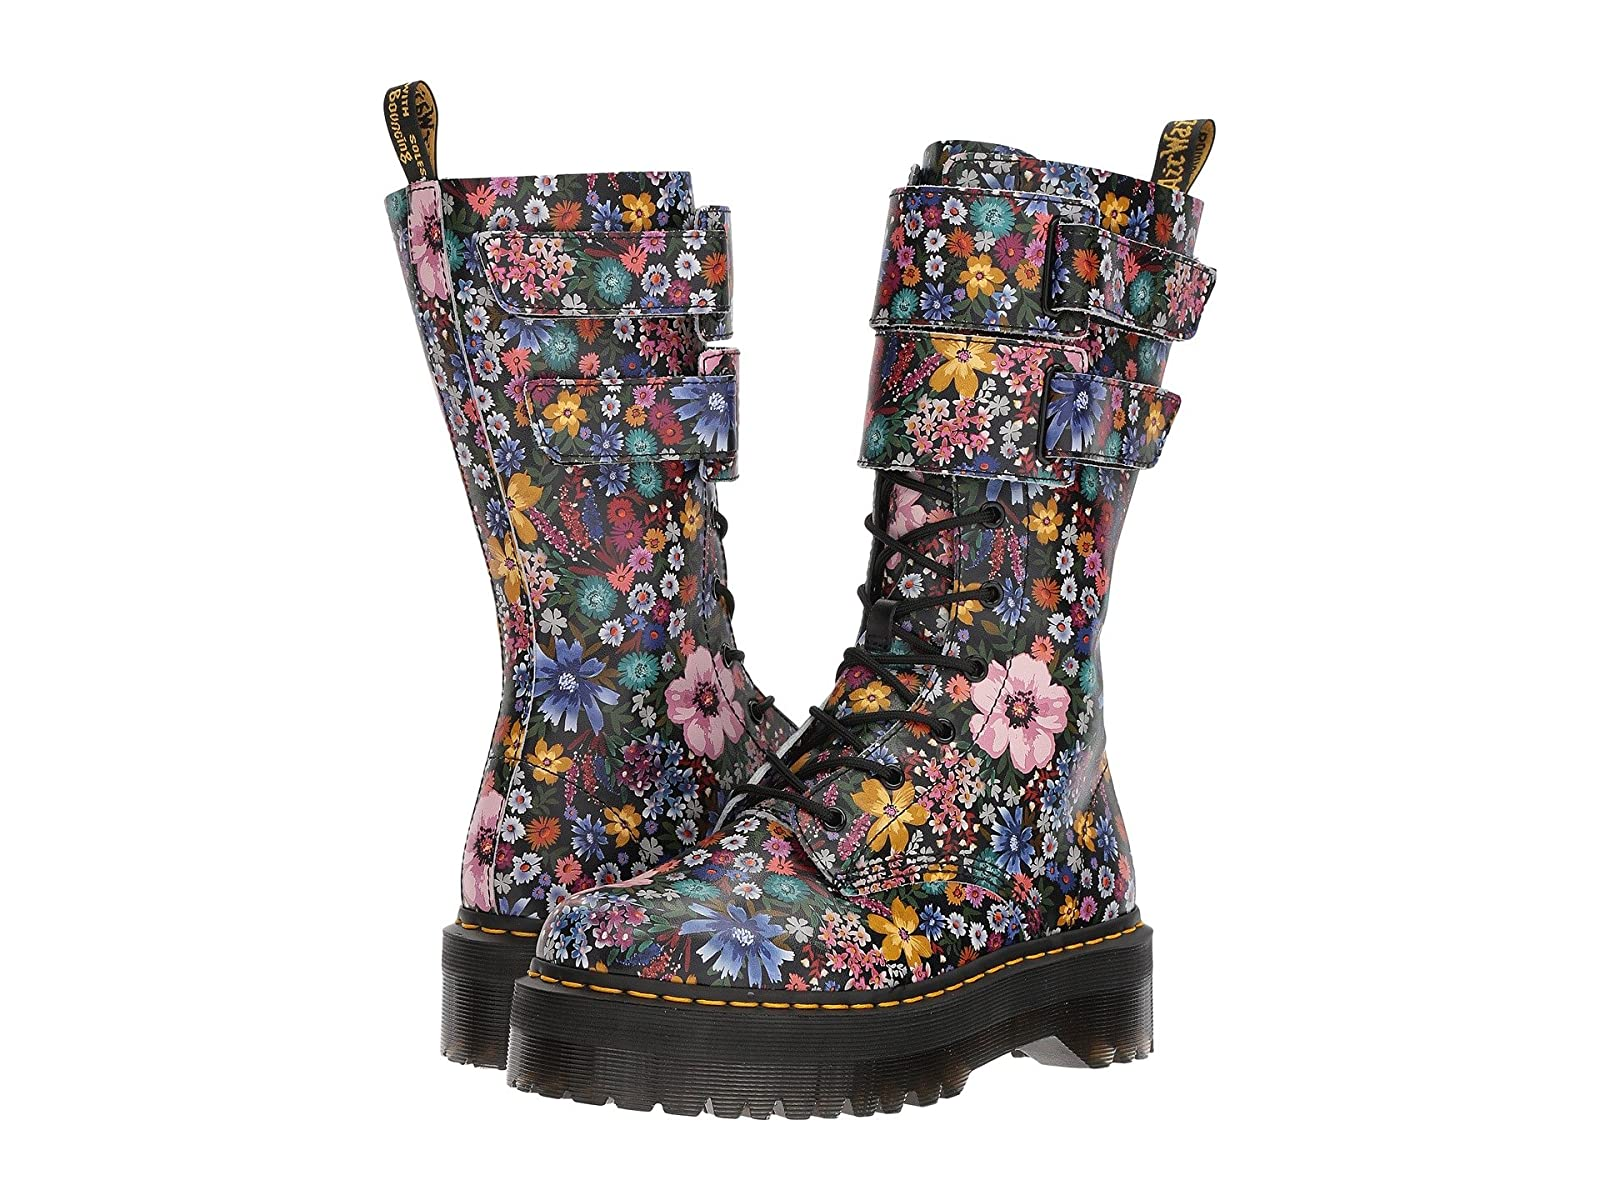 Dr. Martens Jagger WanderlustCheap and distinctive eye-catching shoes